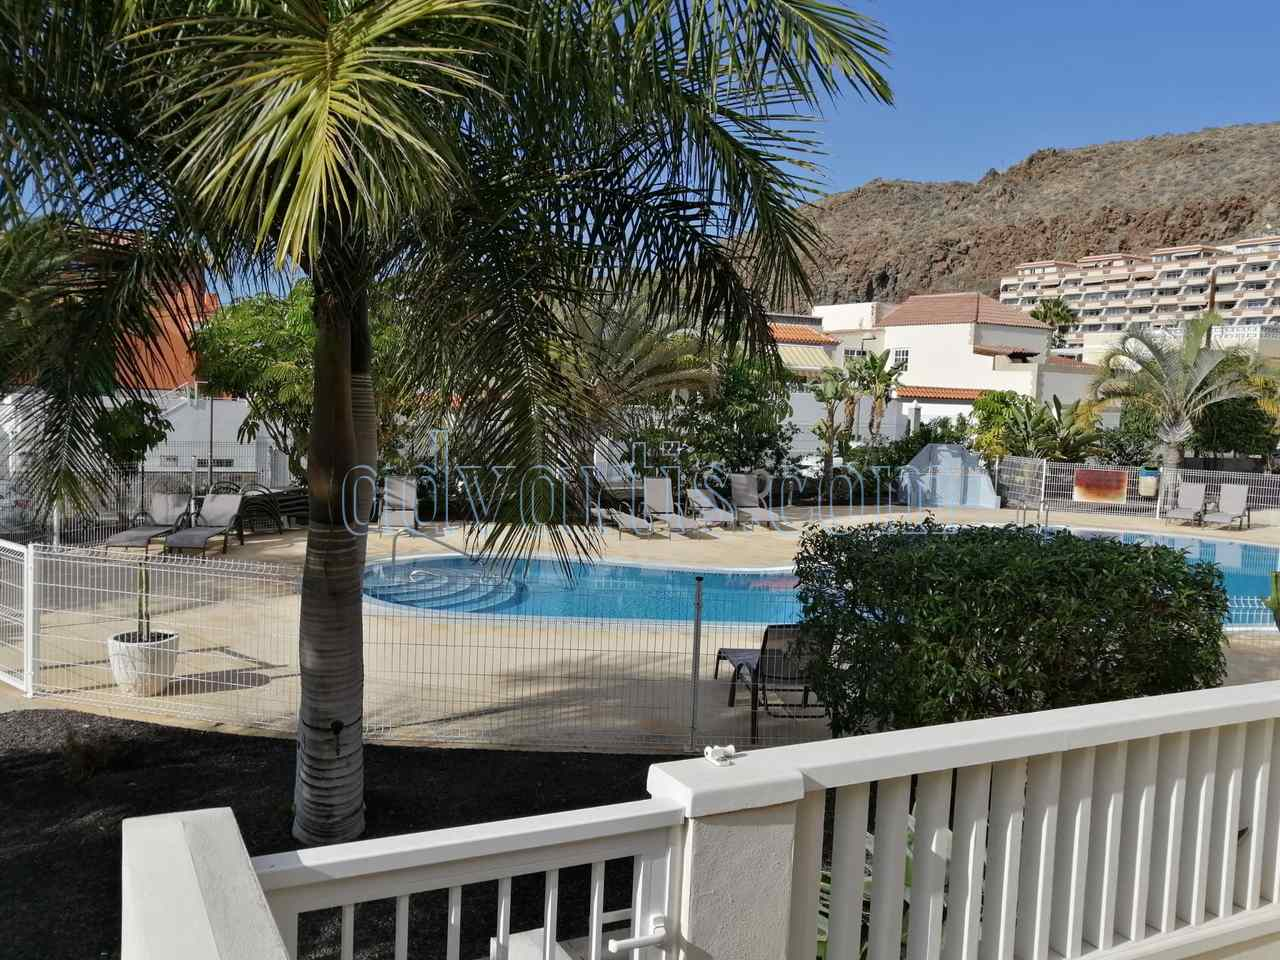 1 bedroom townhouse for sale in Palm-Mar, Tenerife €225.000